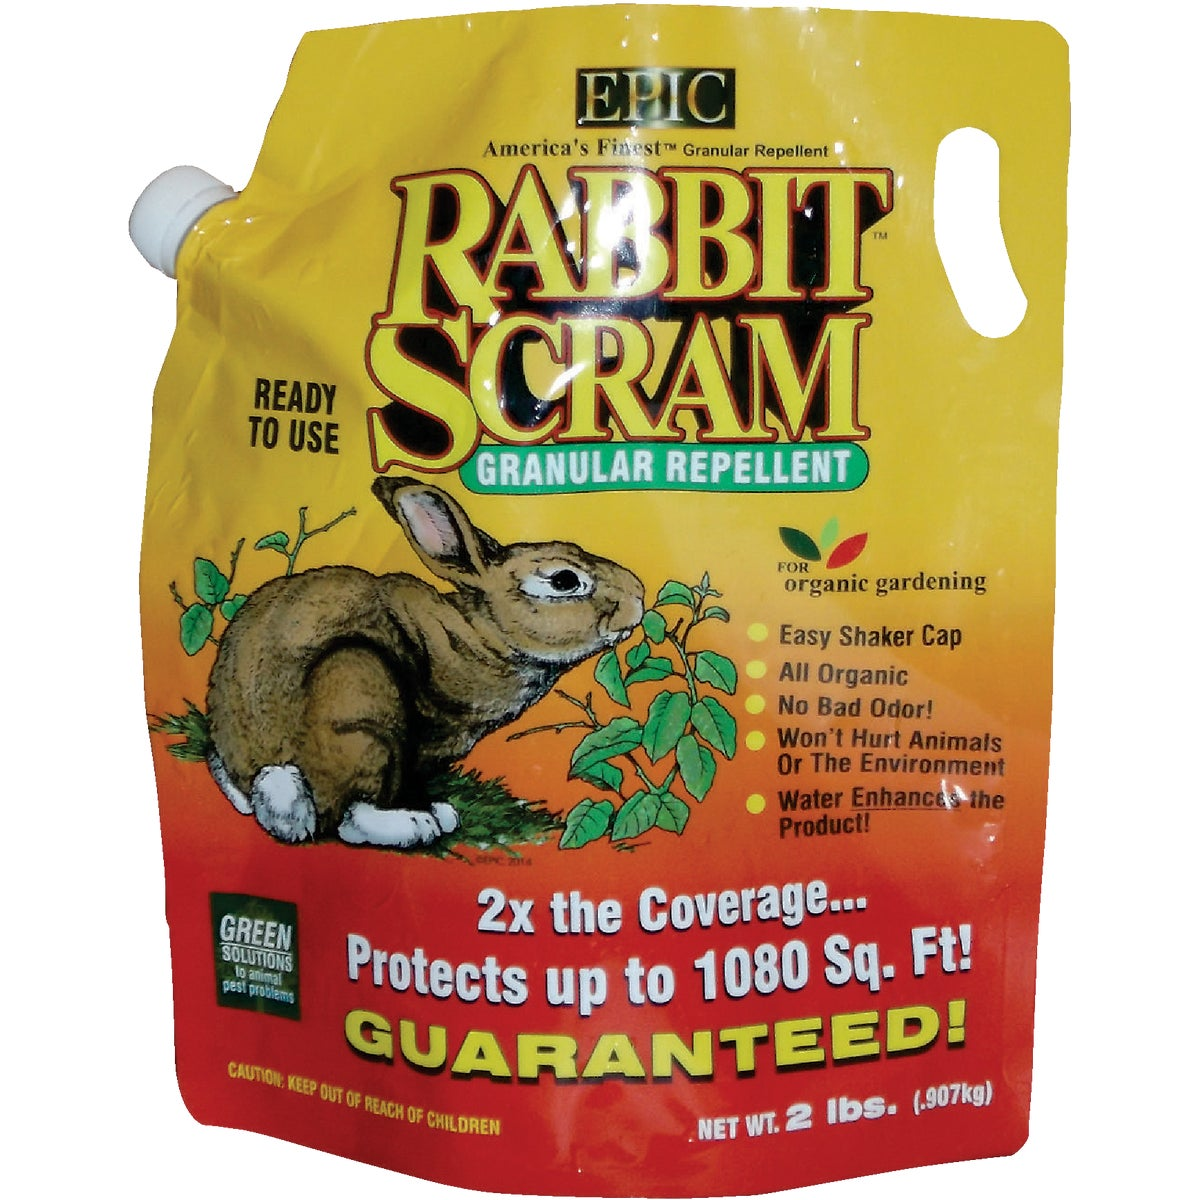 2.5LB RABBIT REPELLENT - 11003 by Enviro Protection